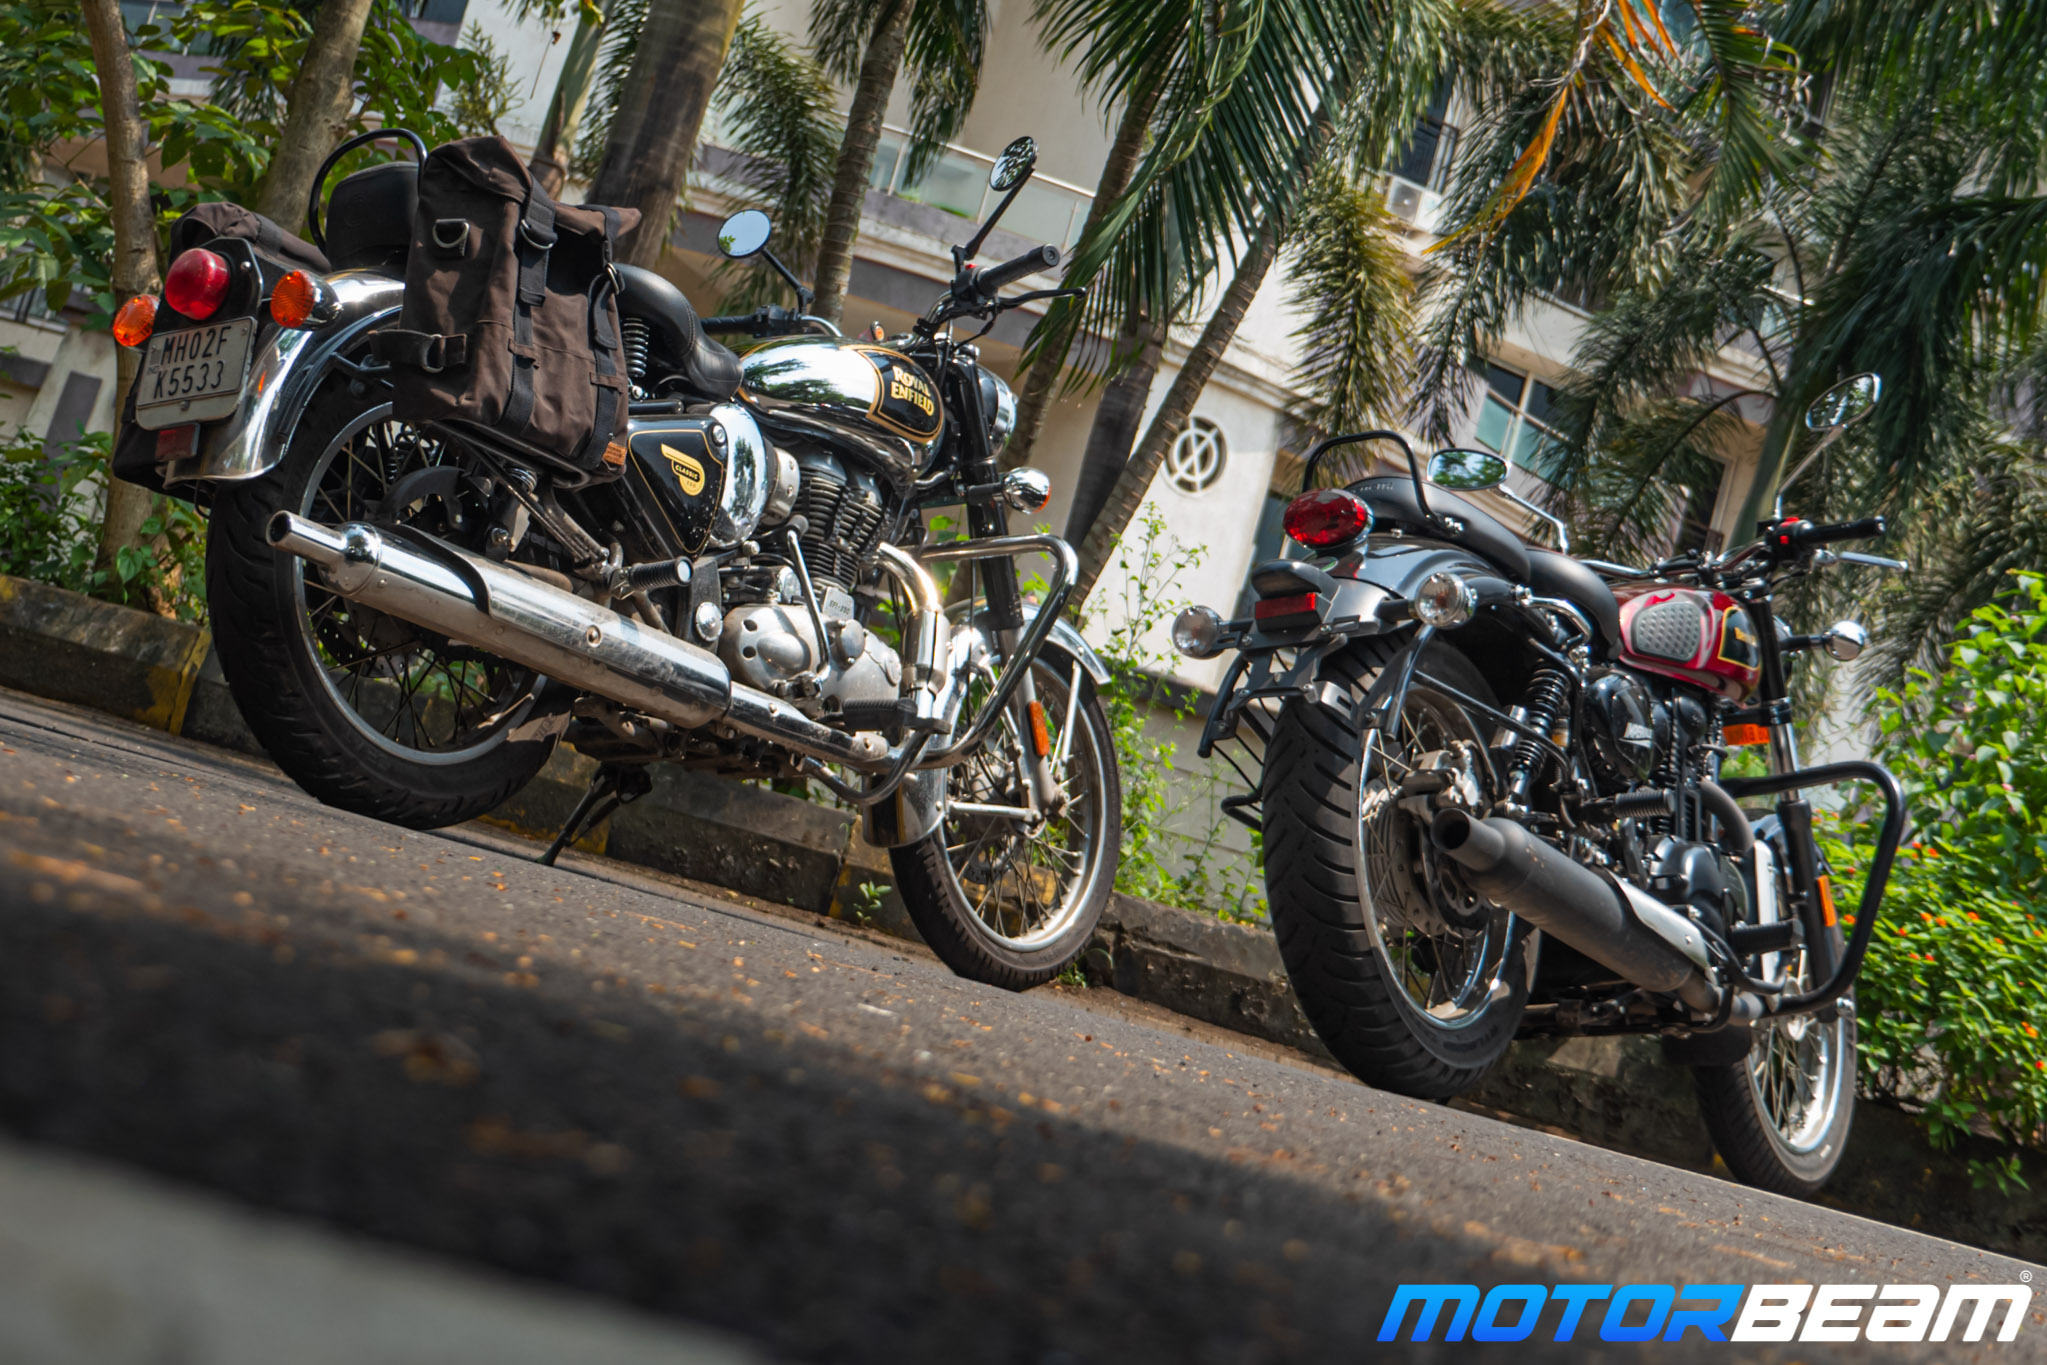 Benelli Imperiale 400 vs Royal Enfield Classic 350 Comparison Review 18